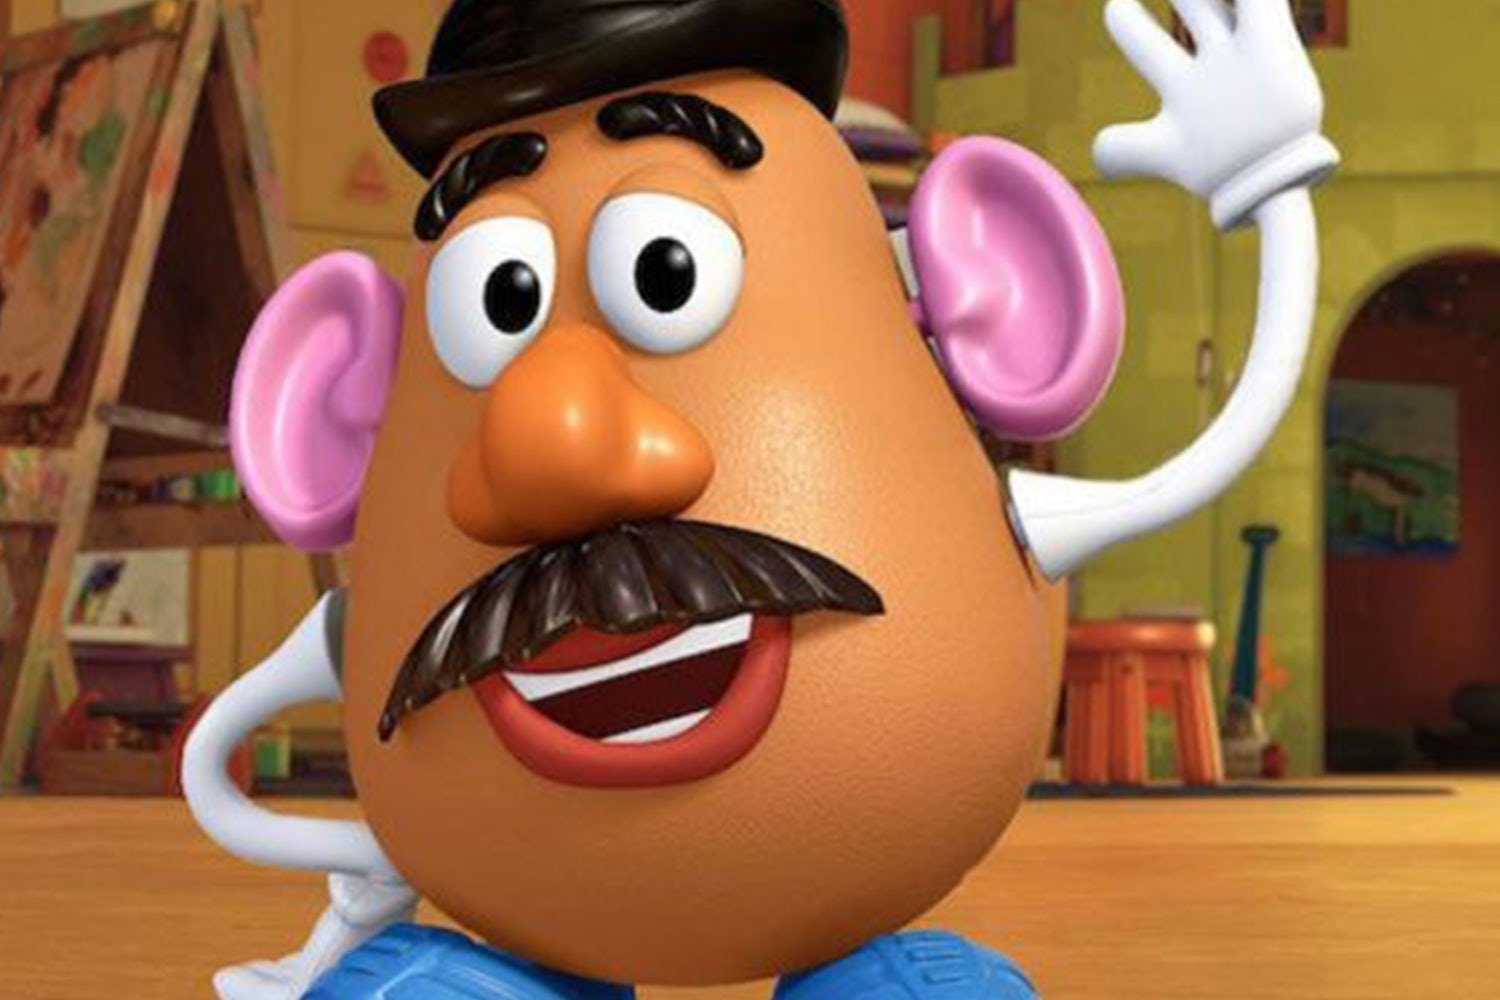 toy story 4 mr potato head in article